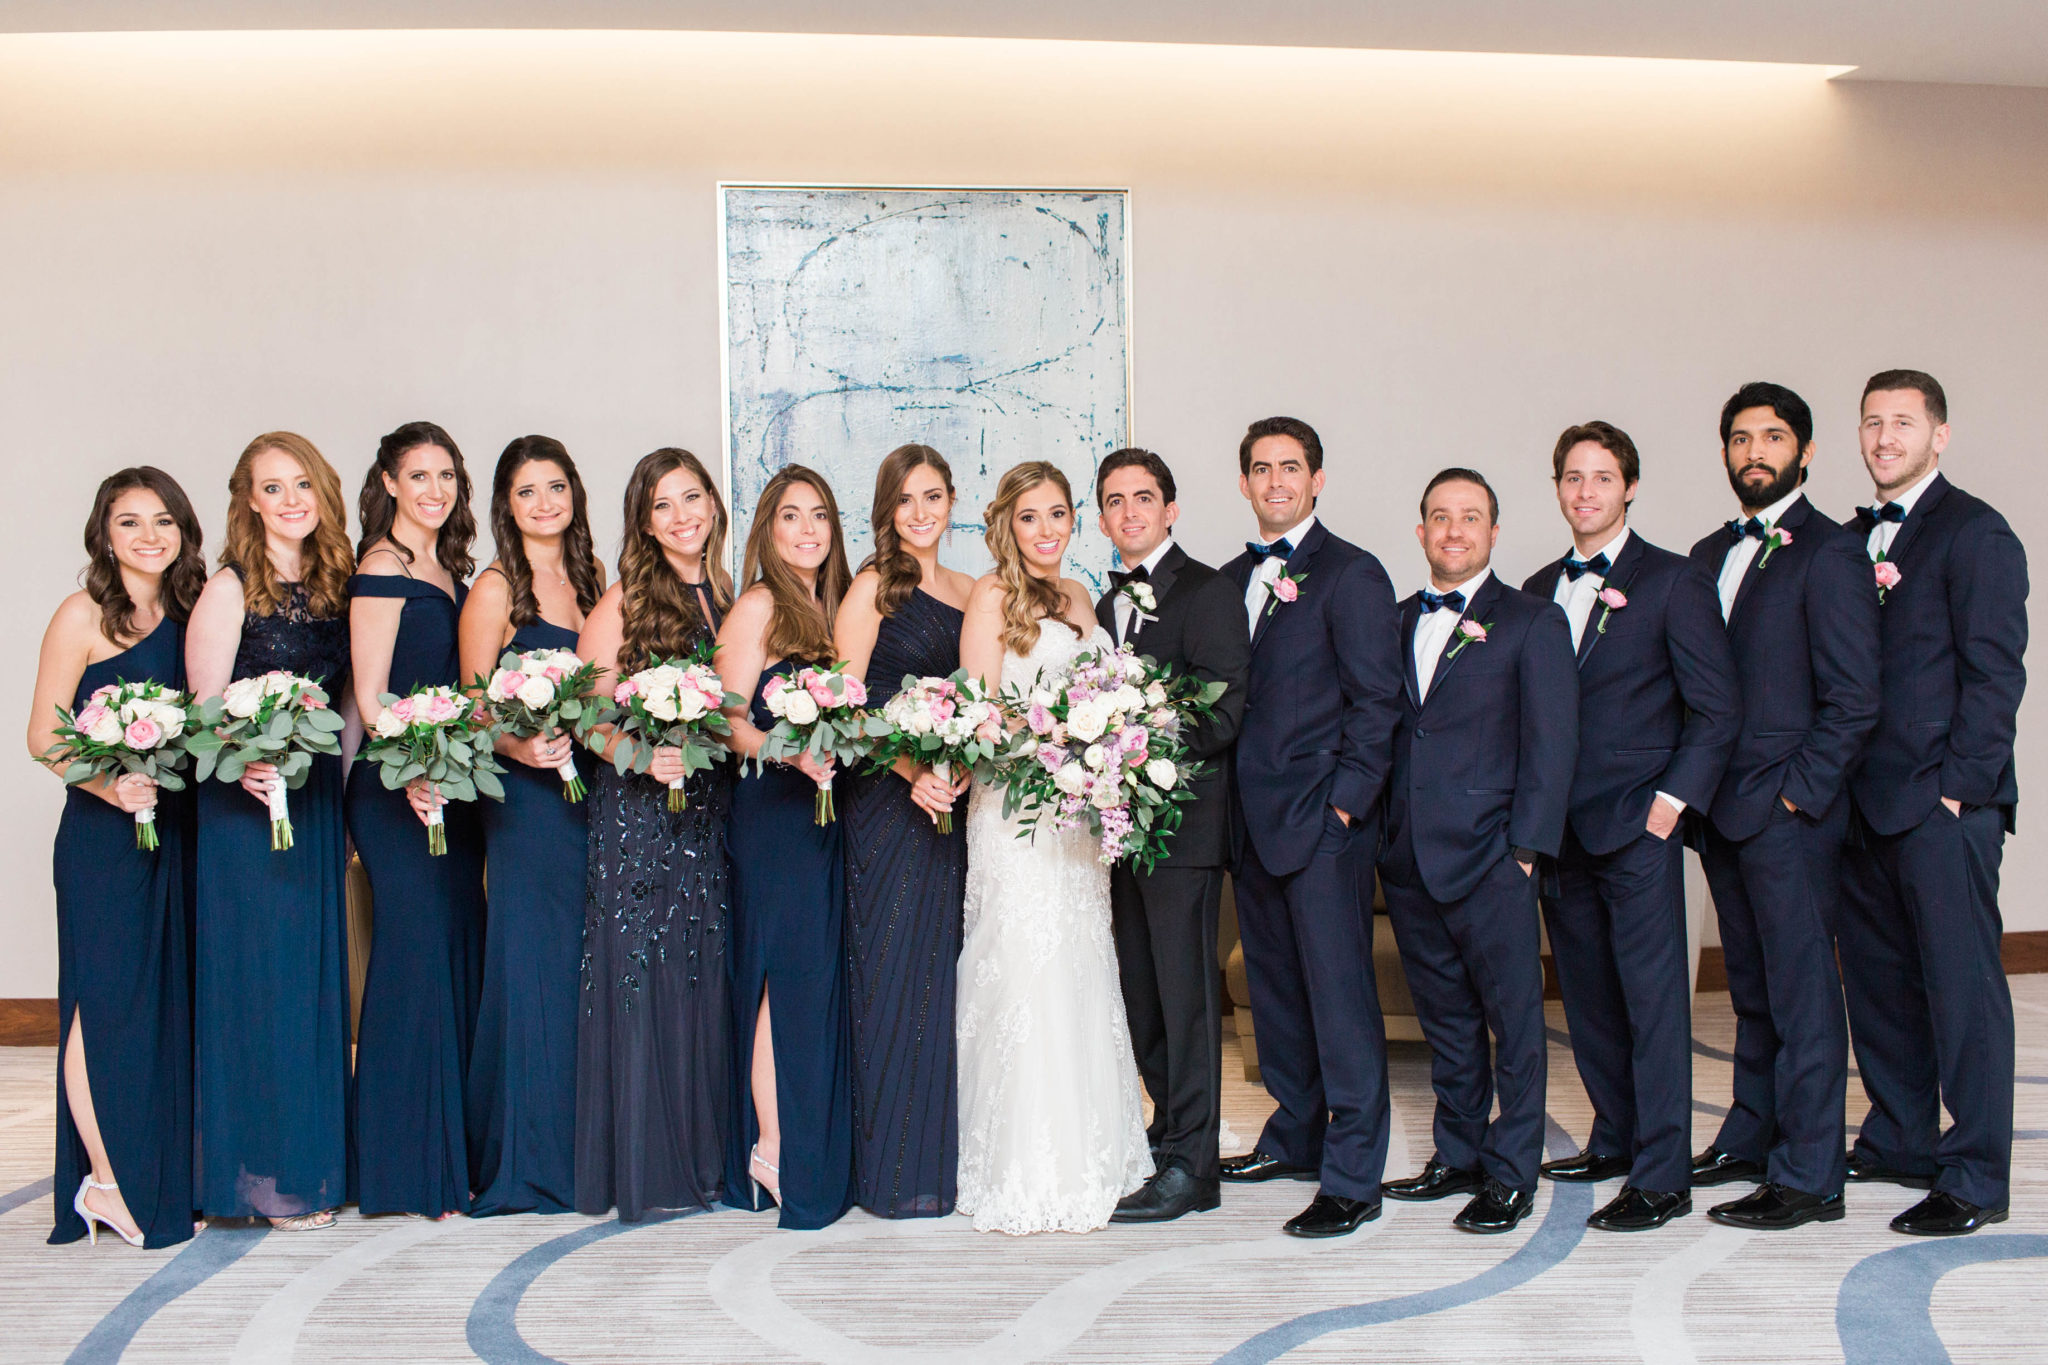 Bridal party at conrad fort lauderdale wedding